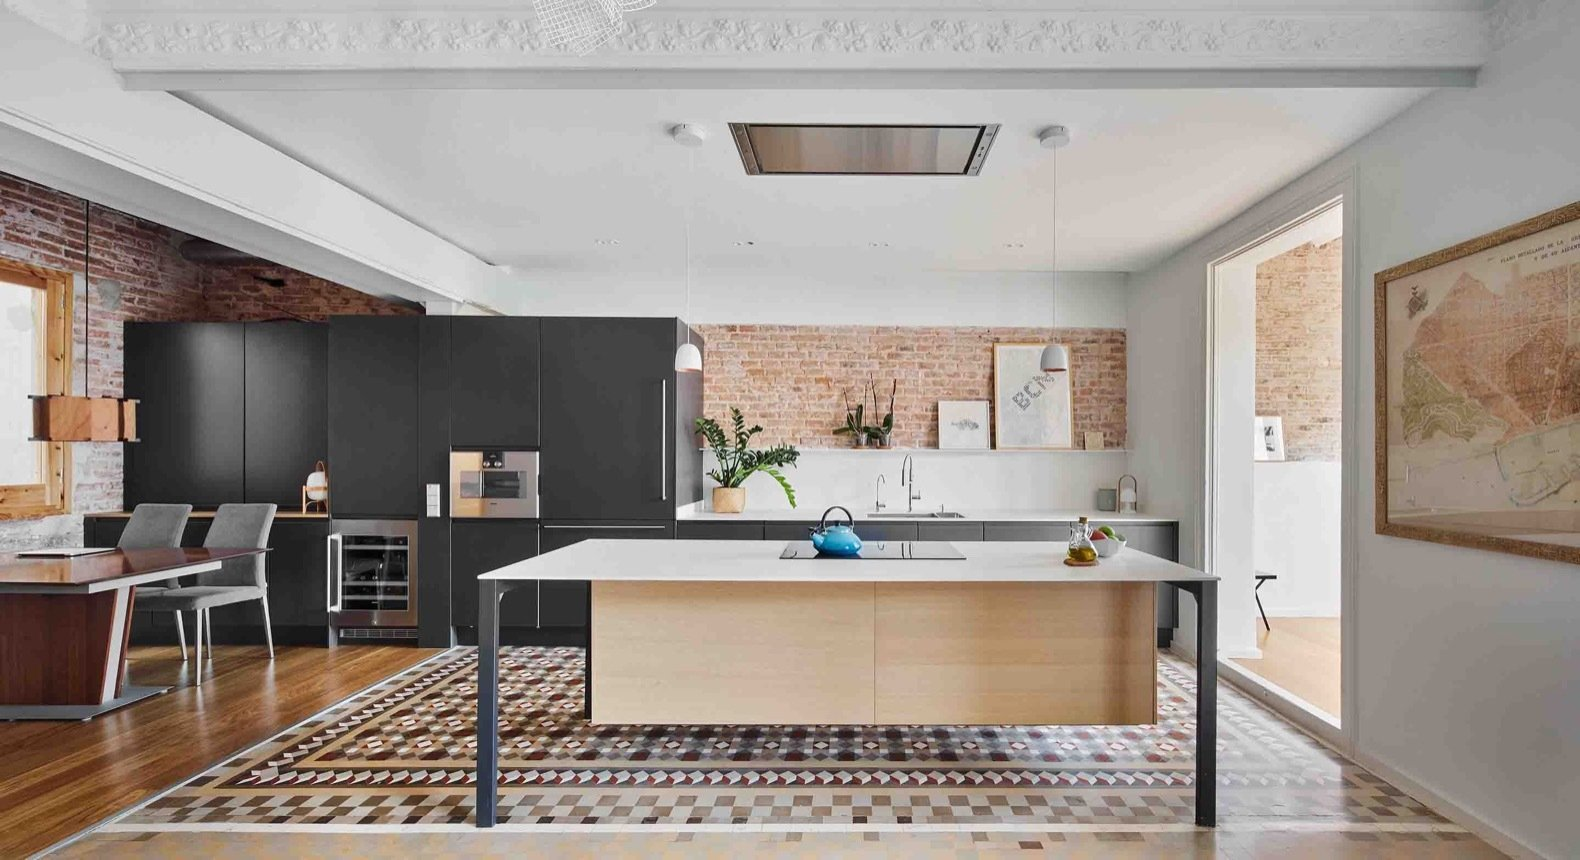 Stunning Tile Stars in This Renovated 19th-Century Pad in Barcelona